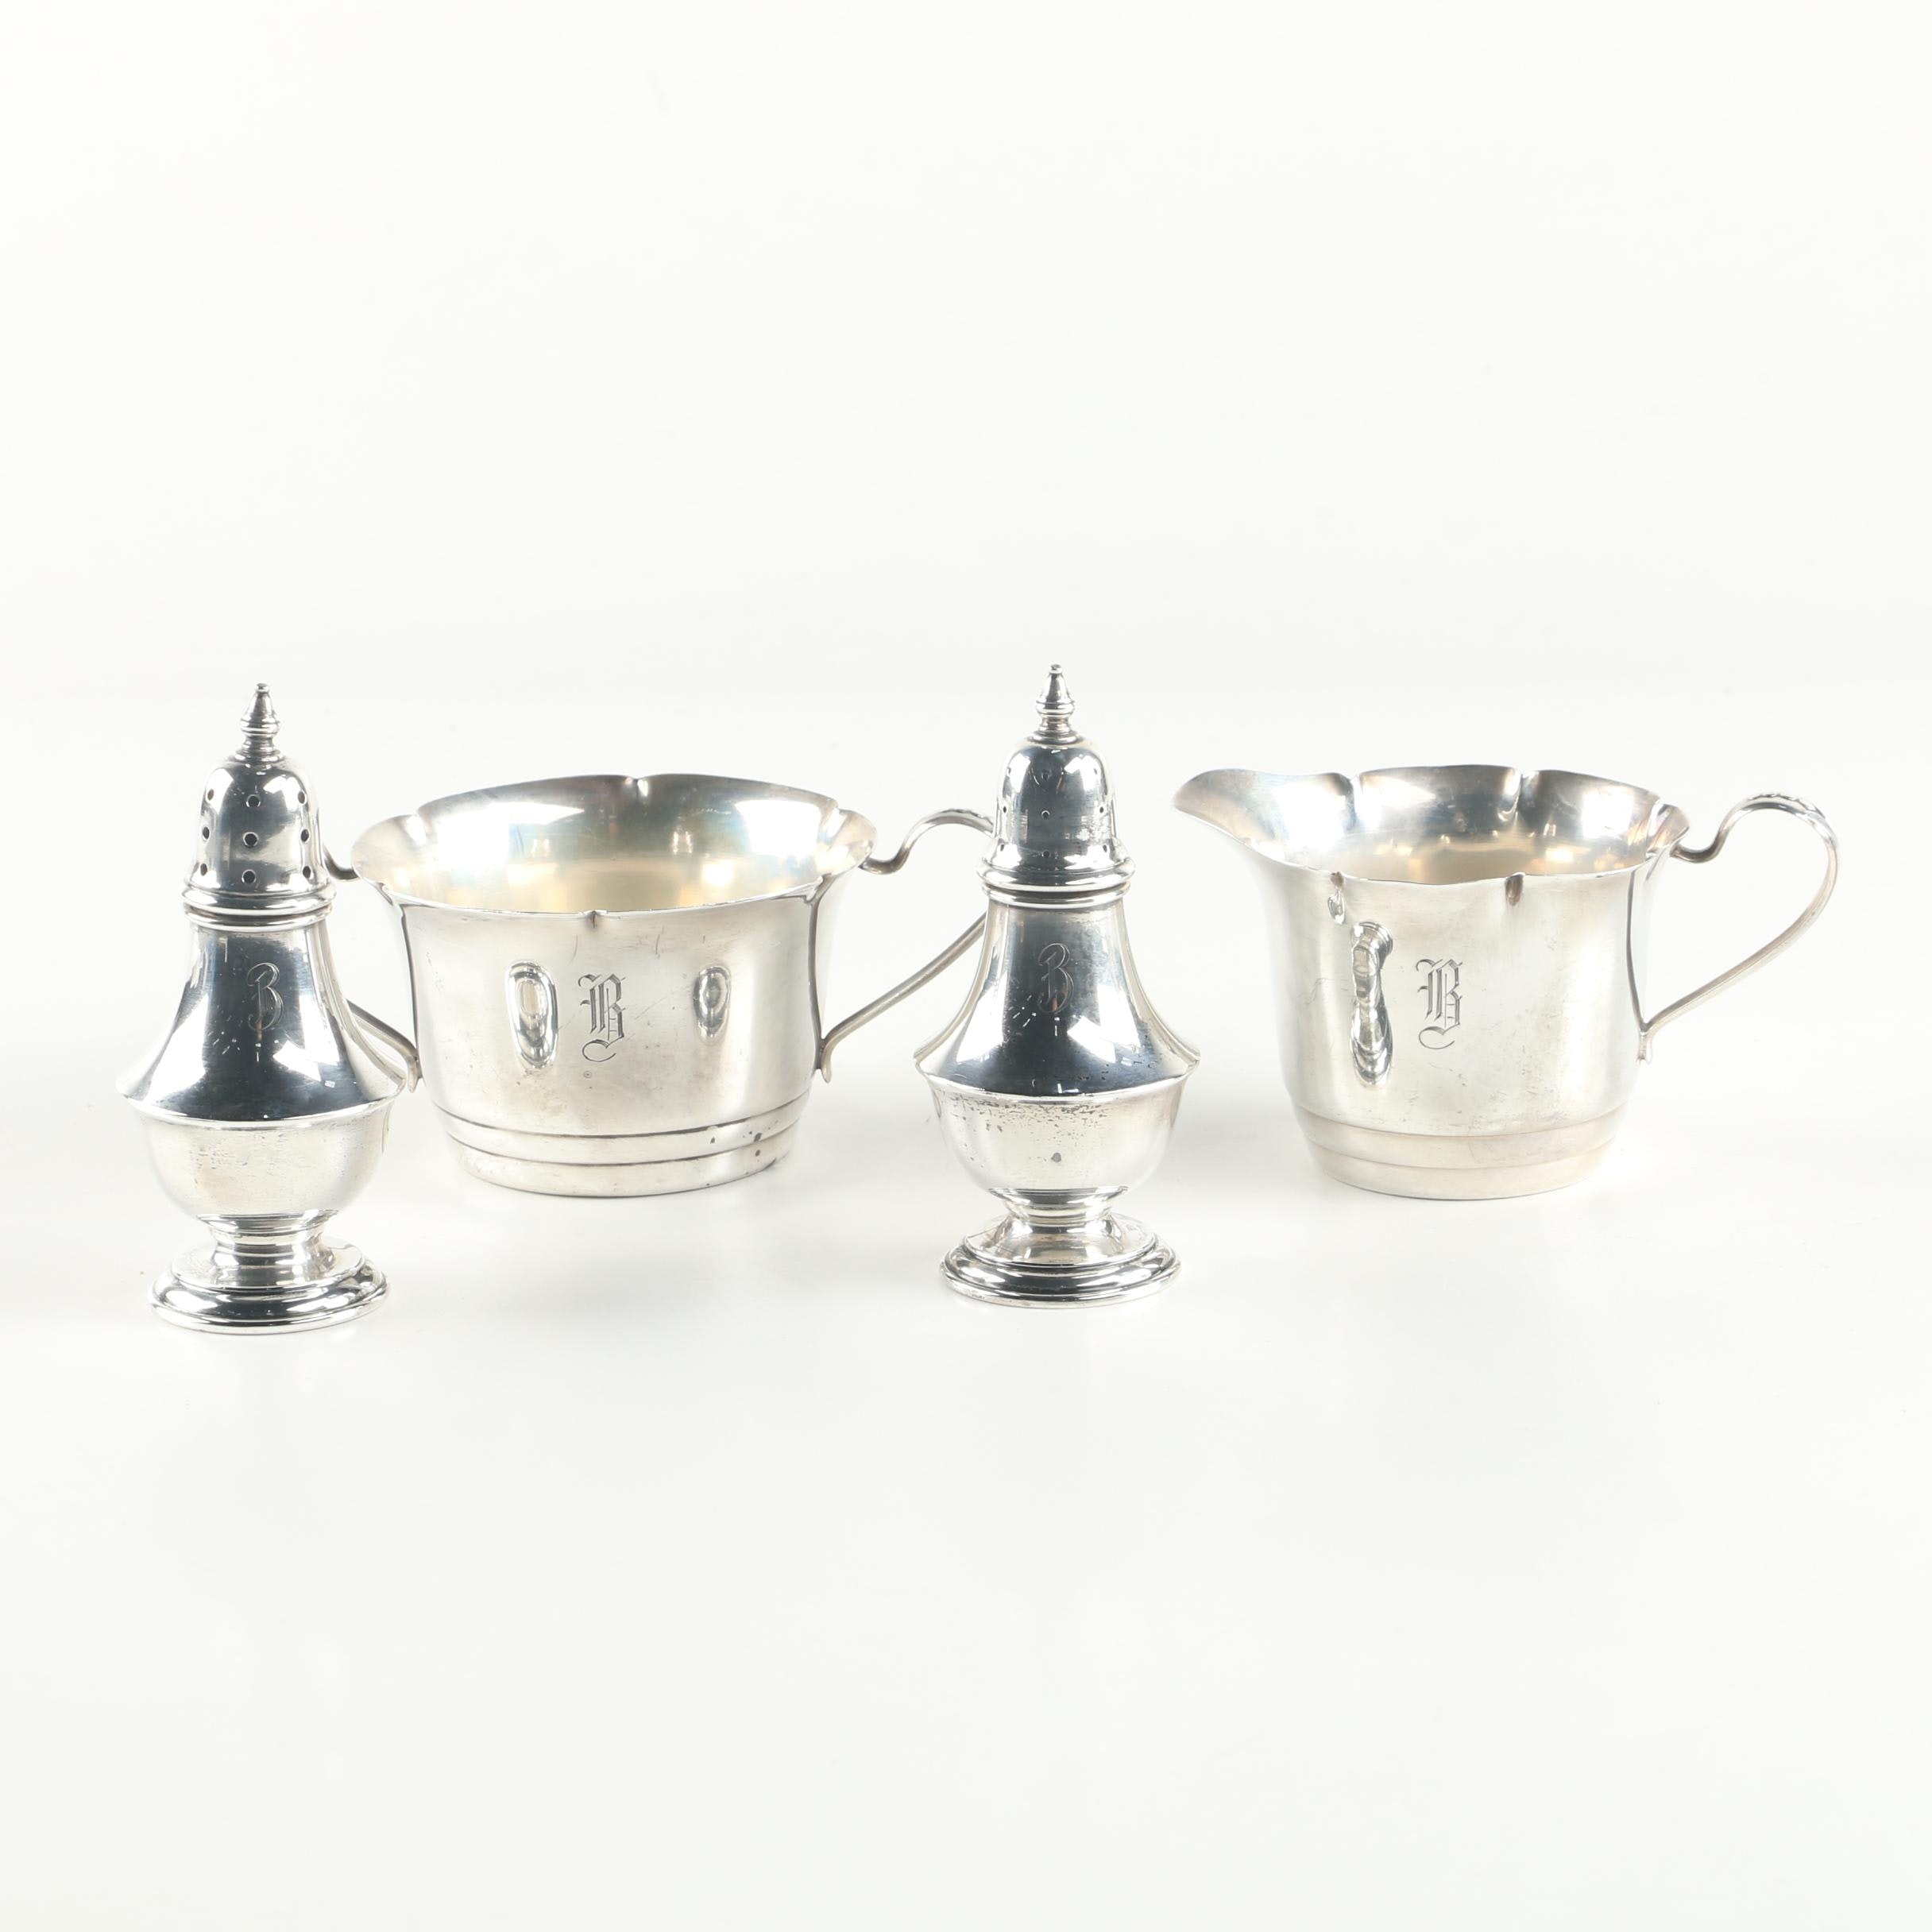 Webster Co. Sterling Silver Condiment Shaker Set, Creamer, and Sugar Bowl